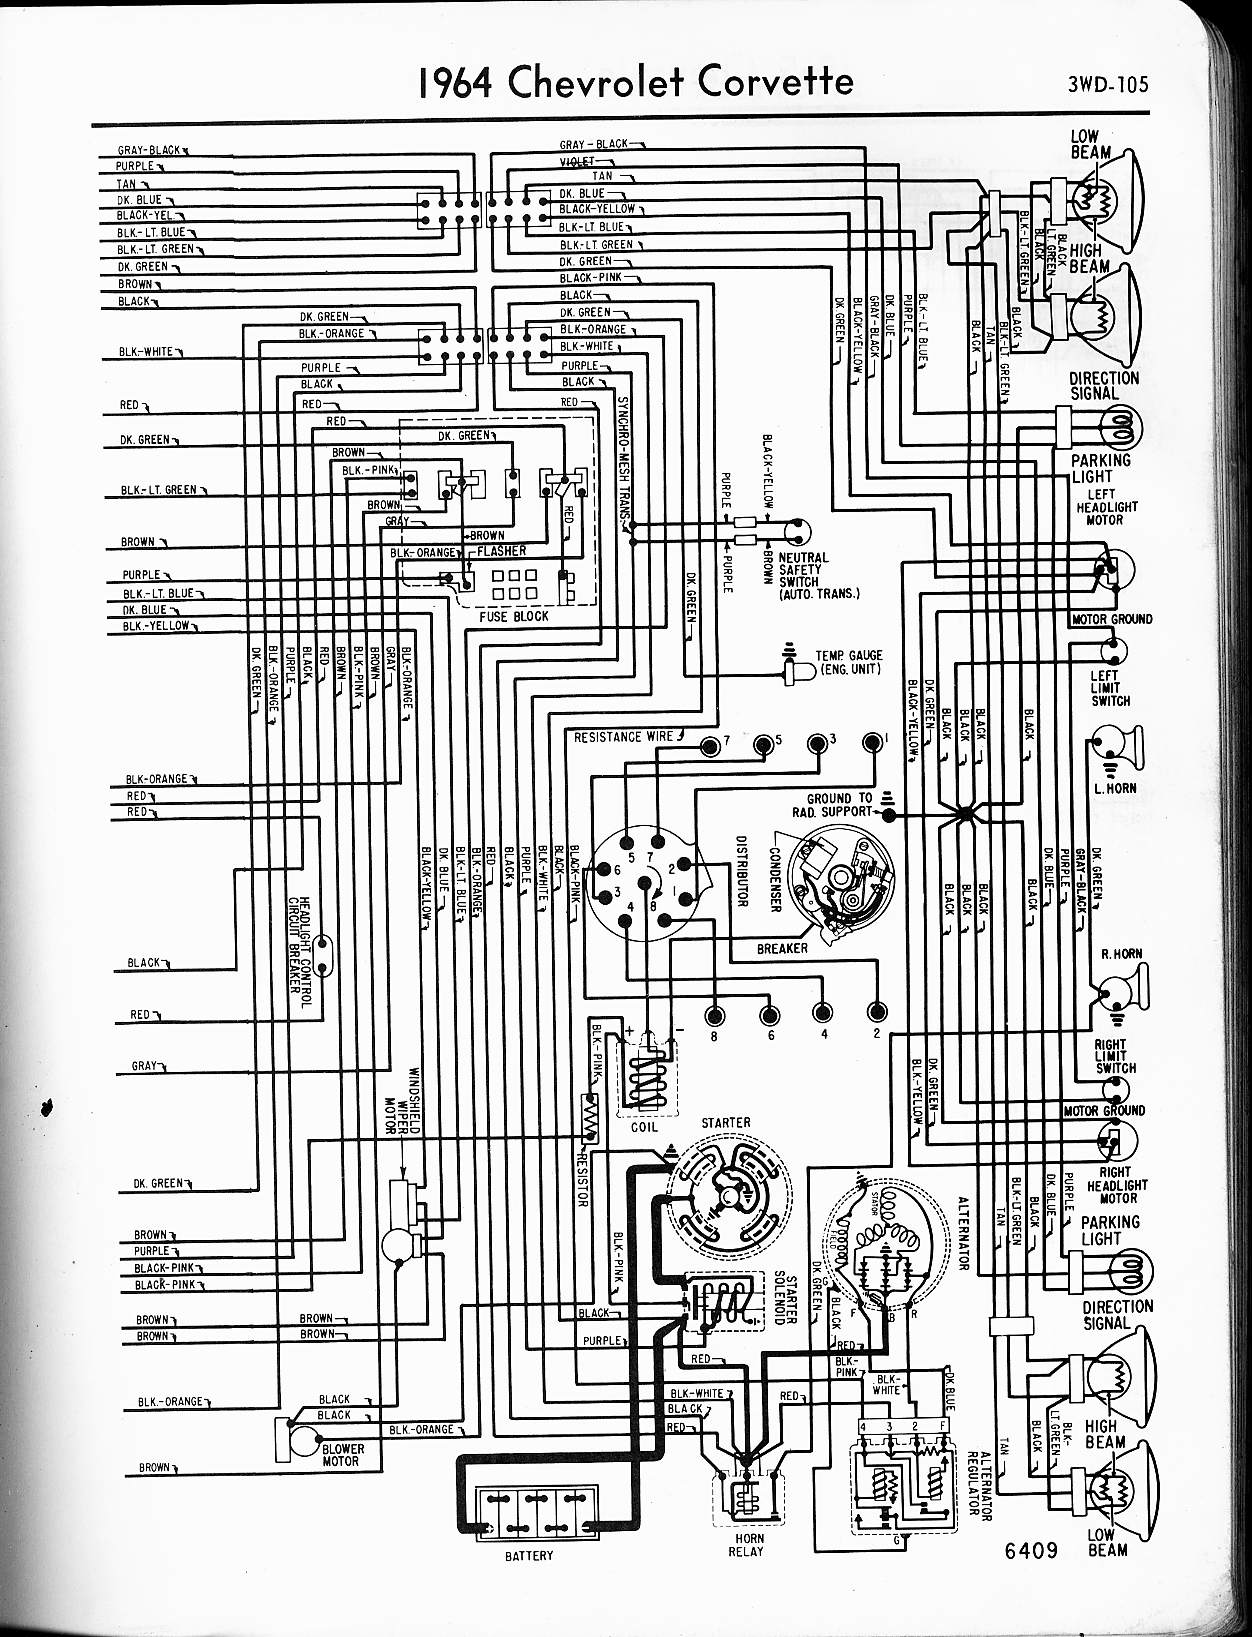 1965 corvette wiring diagram wire center u2022 rh linxglobal co 1974 Corvette Fuse Panel Diagram 1974 Corvette Hood